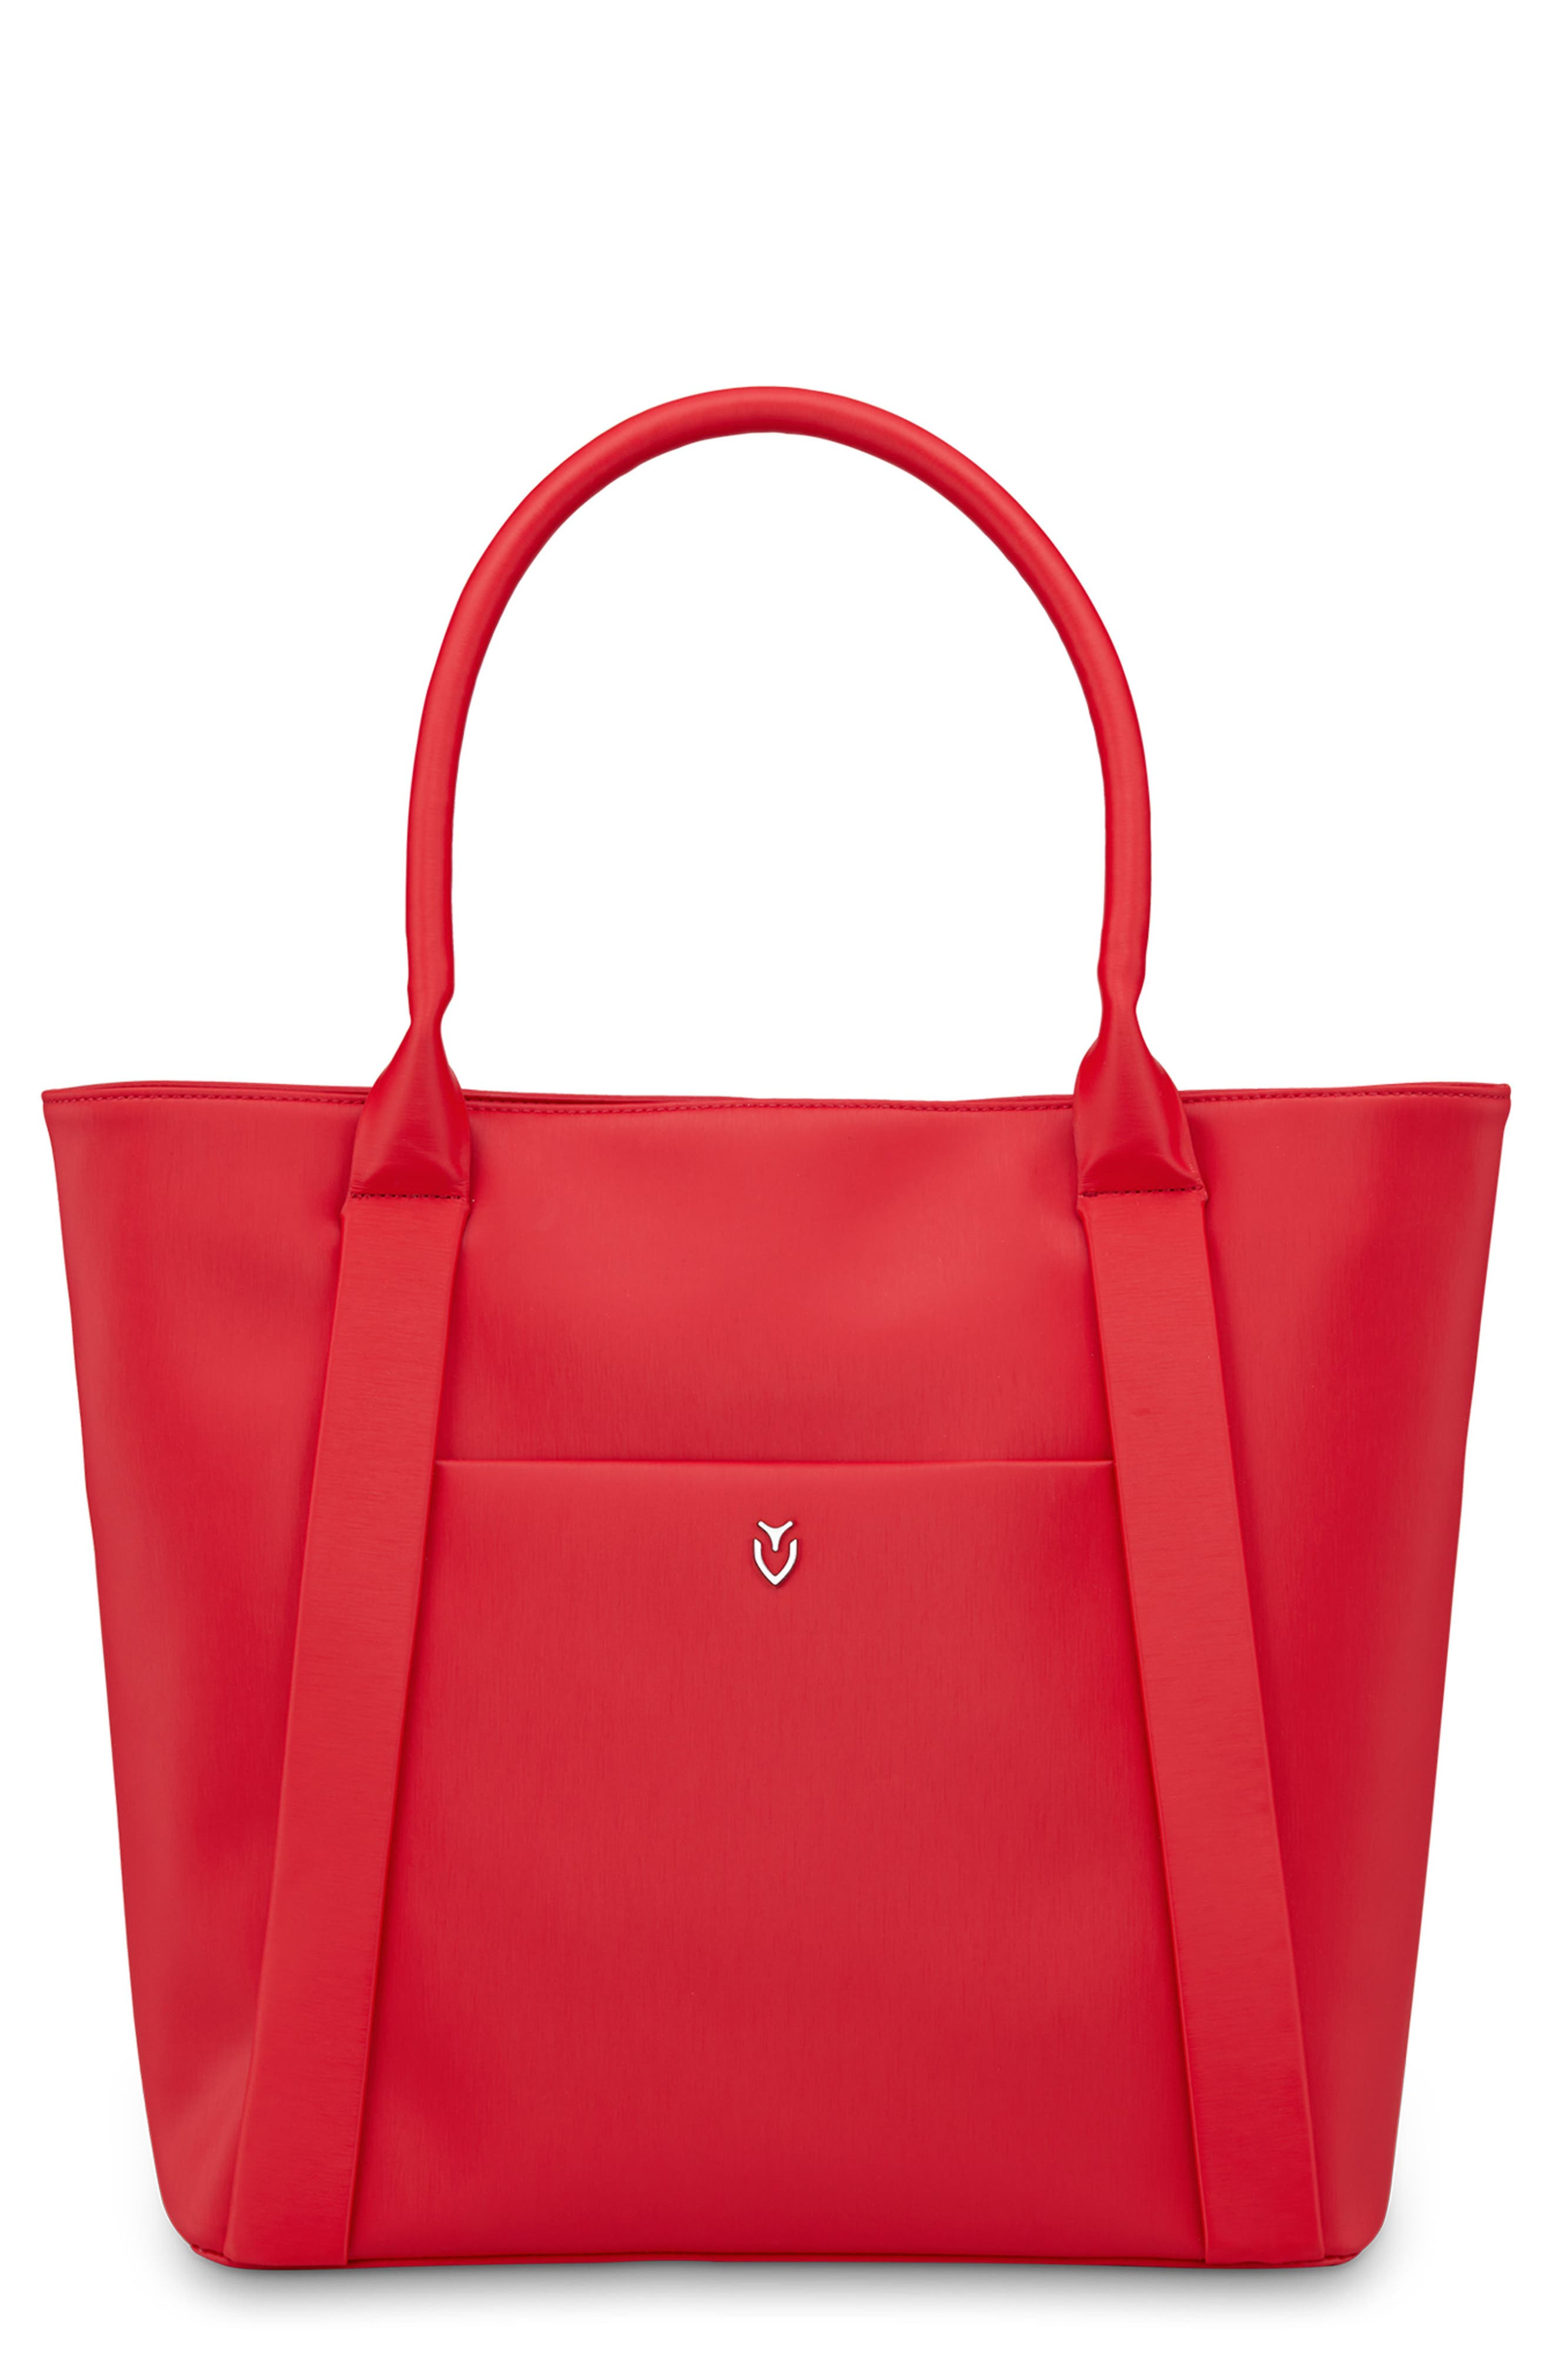 Vessel Signature 2.0 Large Faux Leather Tote Bag